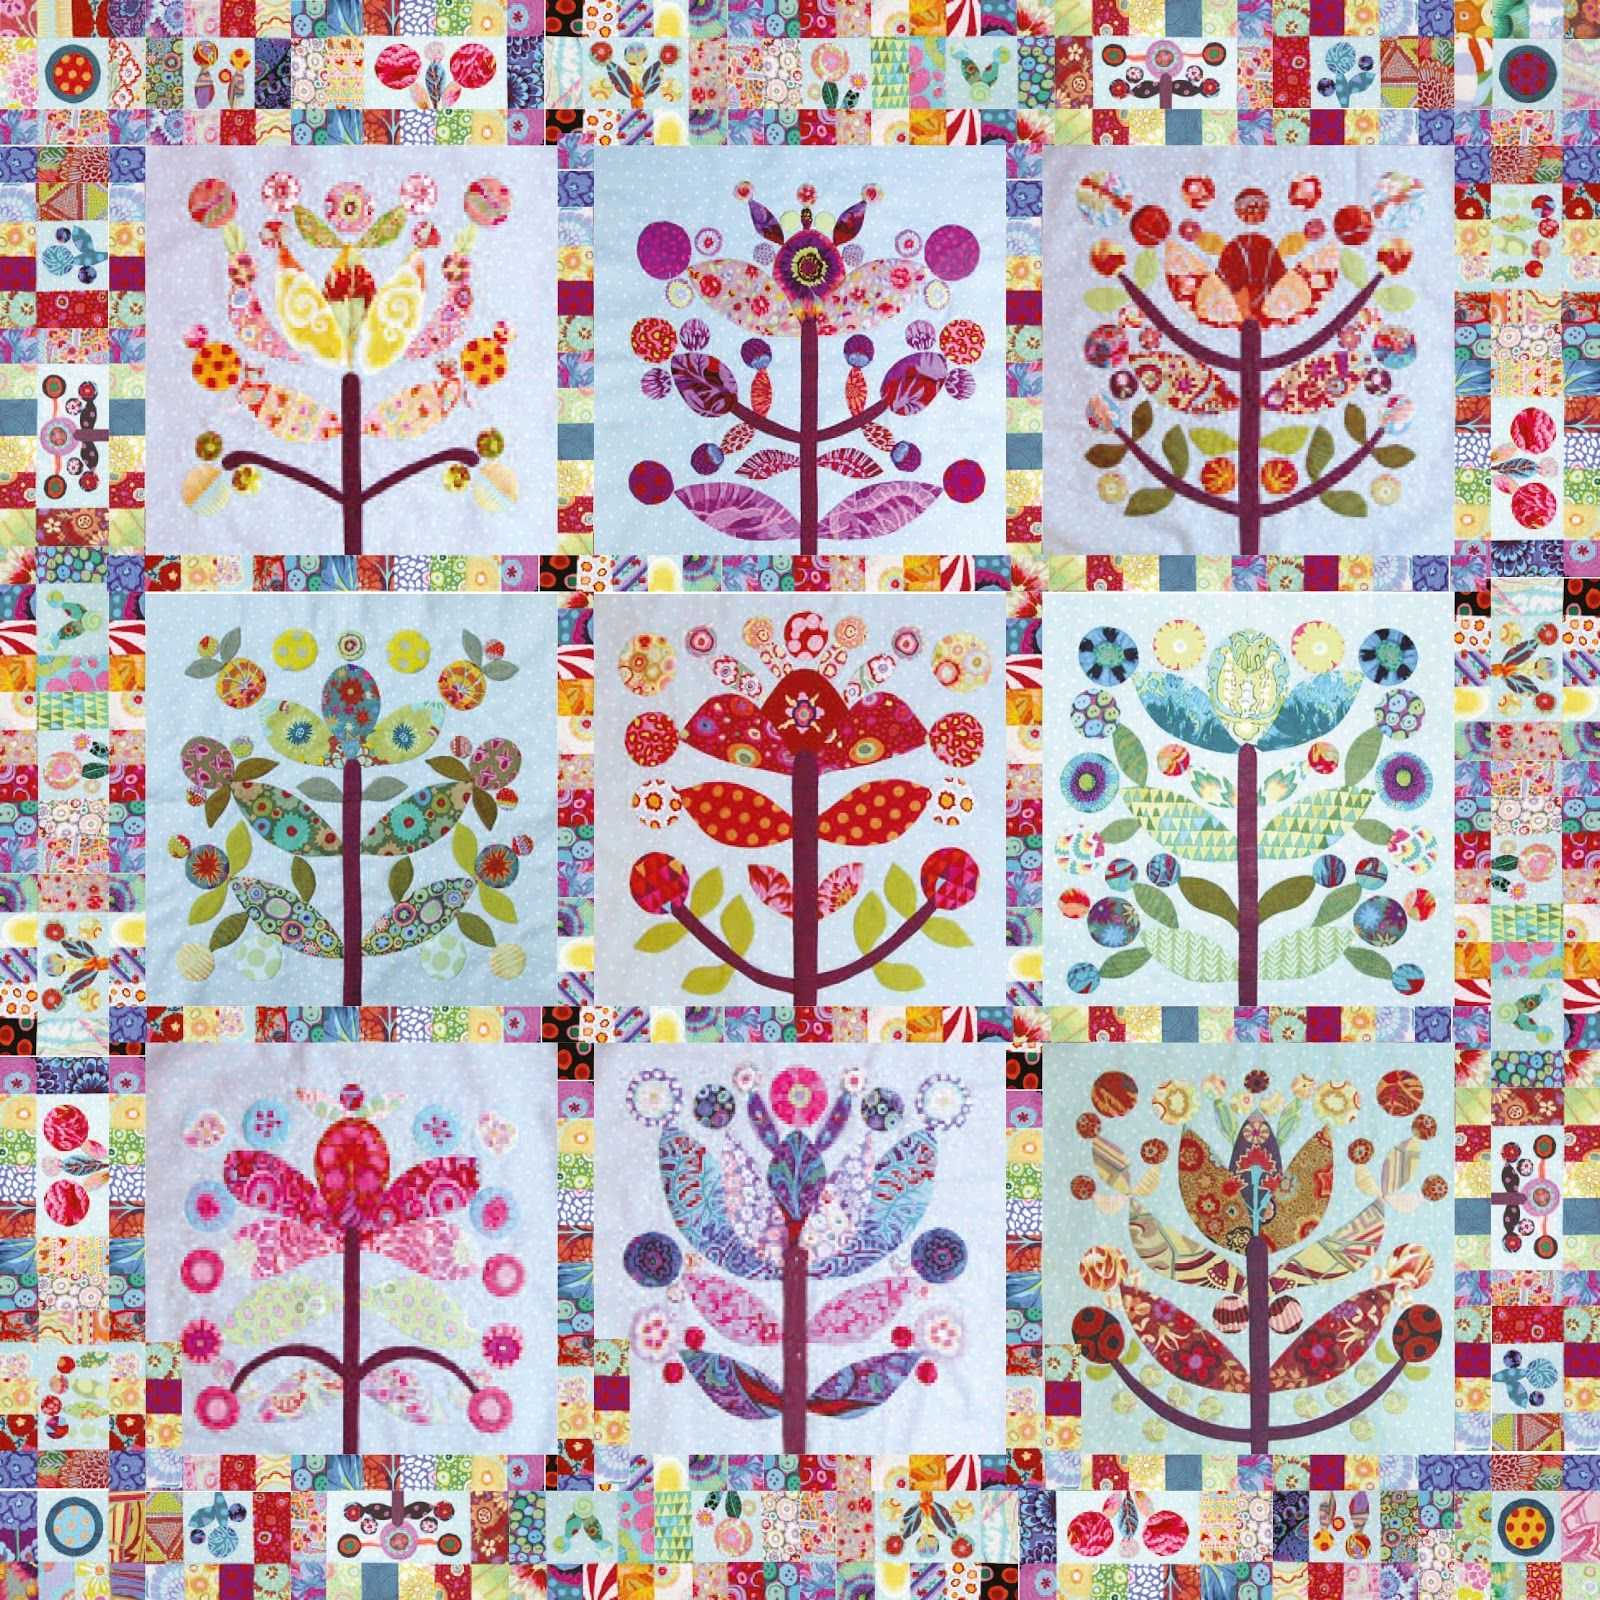 kim mclean in holland quilts pinterest patchwork